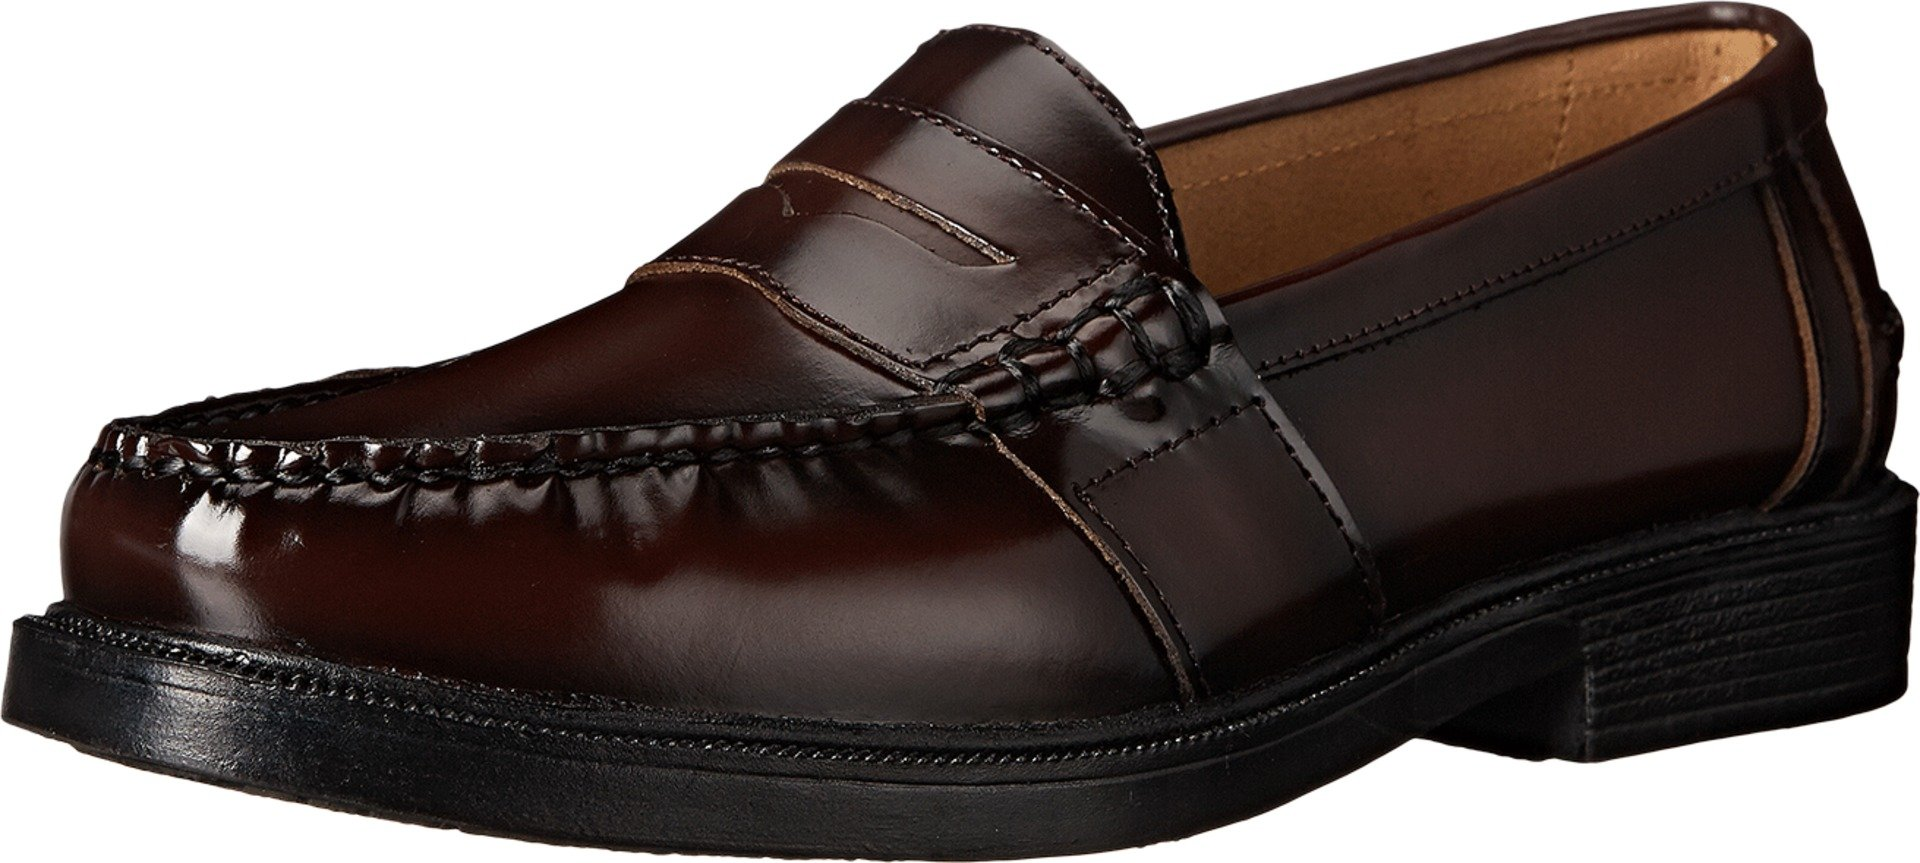 Nunn Bush Men's Lincoln Loafer,Burgundy,9.5 M